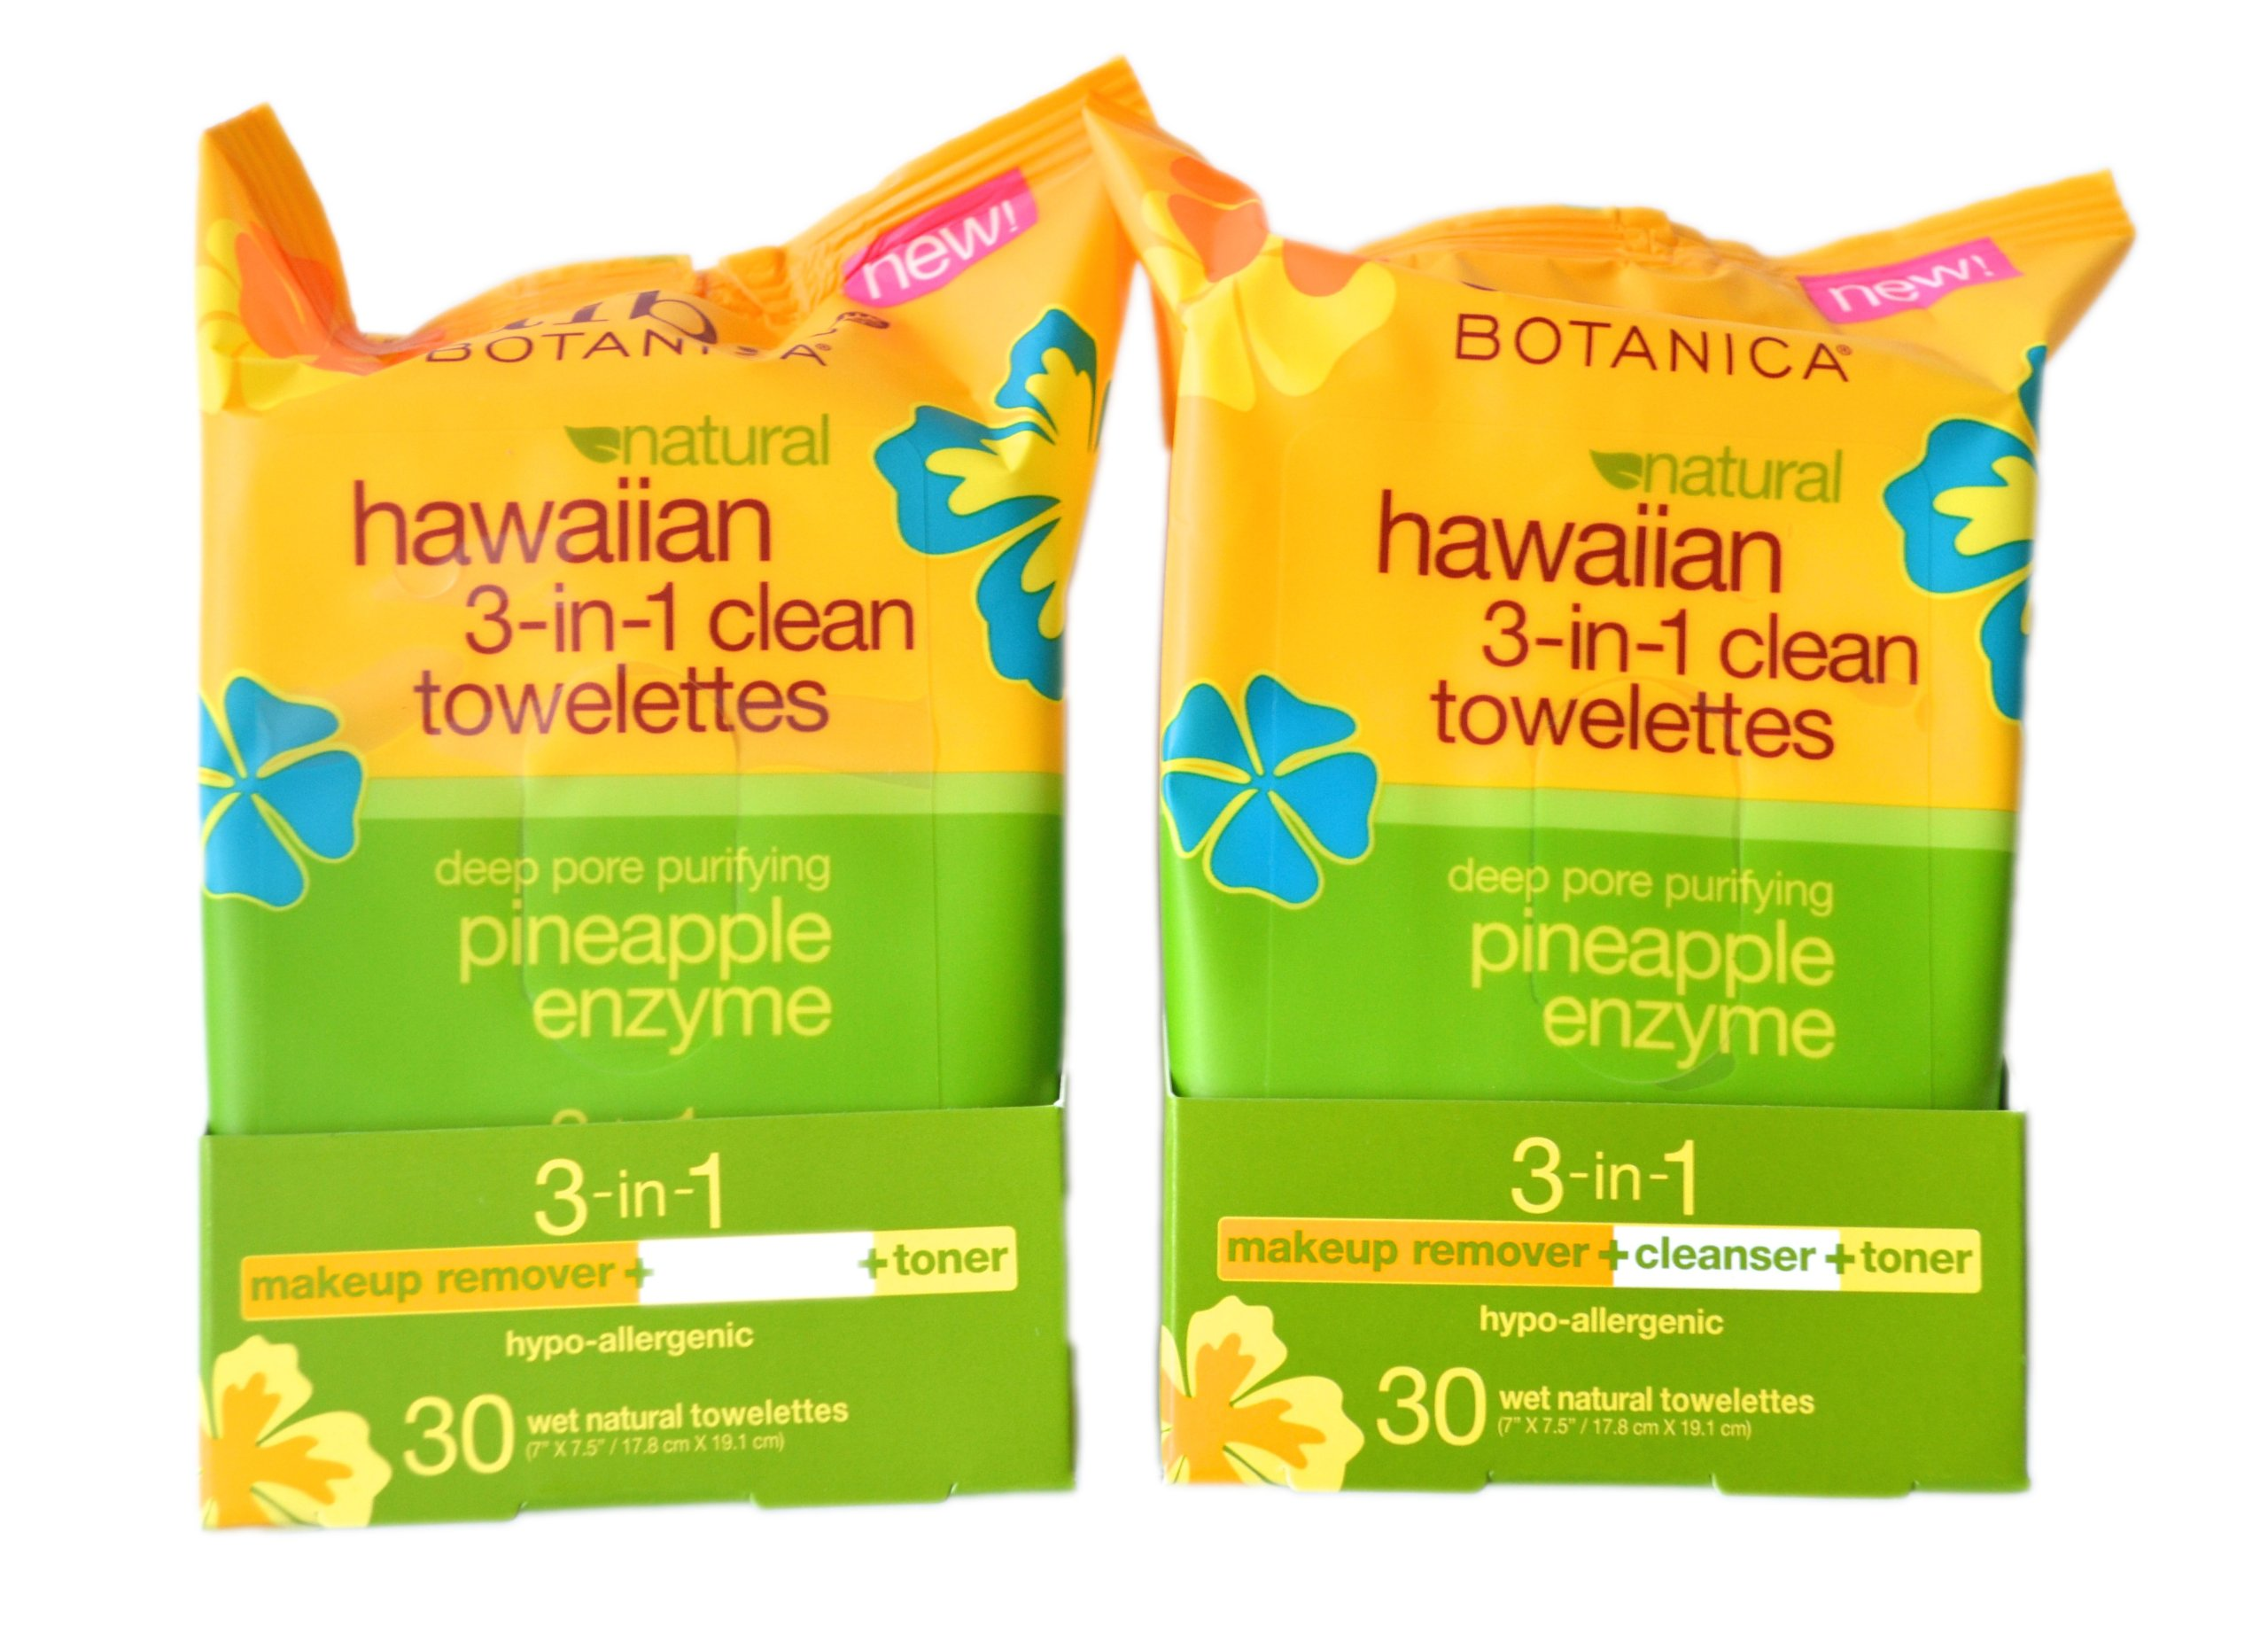 Alba Botanica Hawaiian 3-in-1 Clean Towelettes, 30 Count, Pack of 2